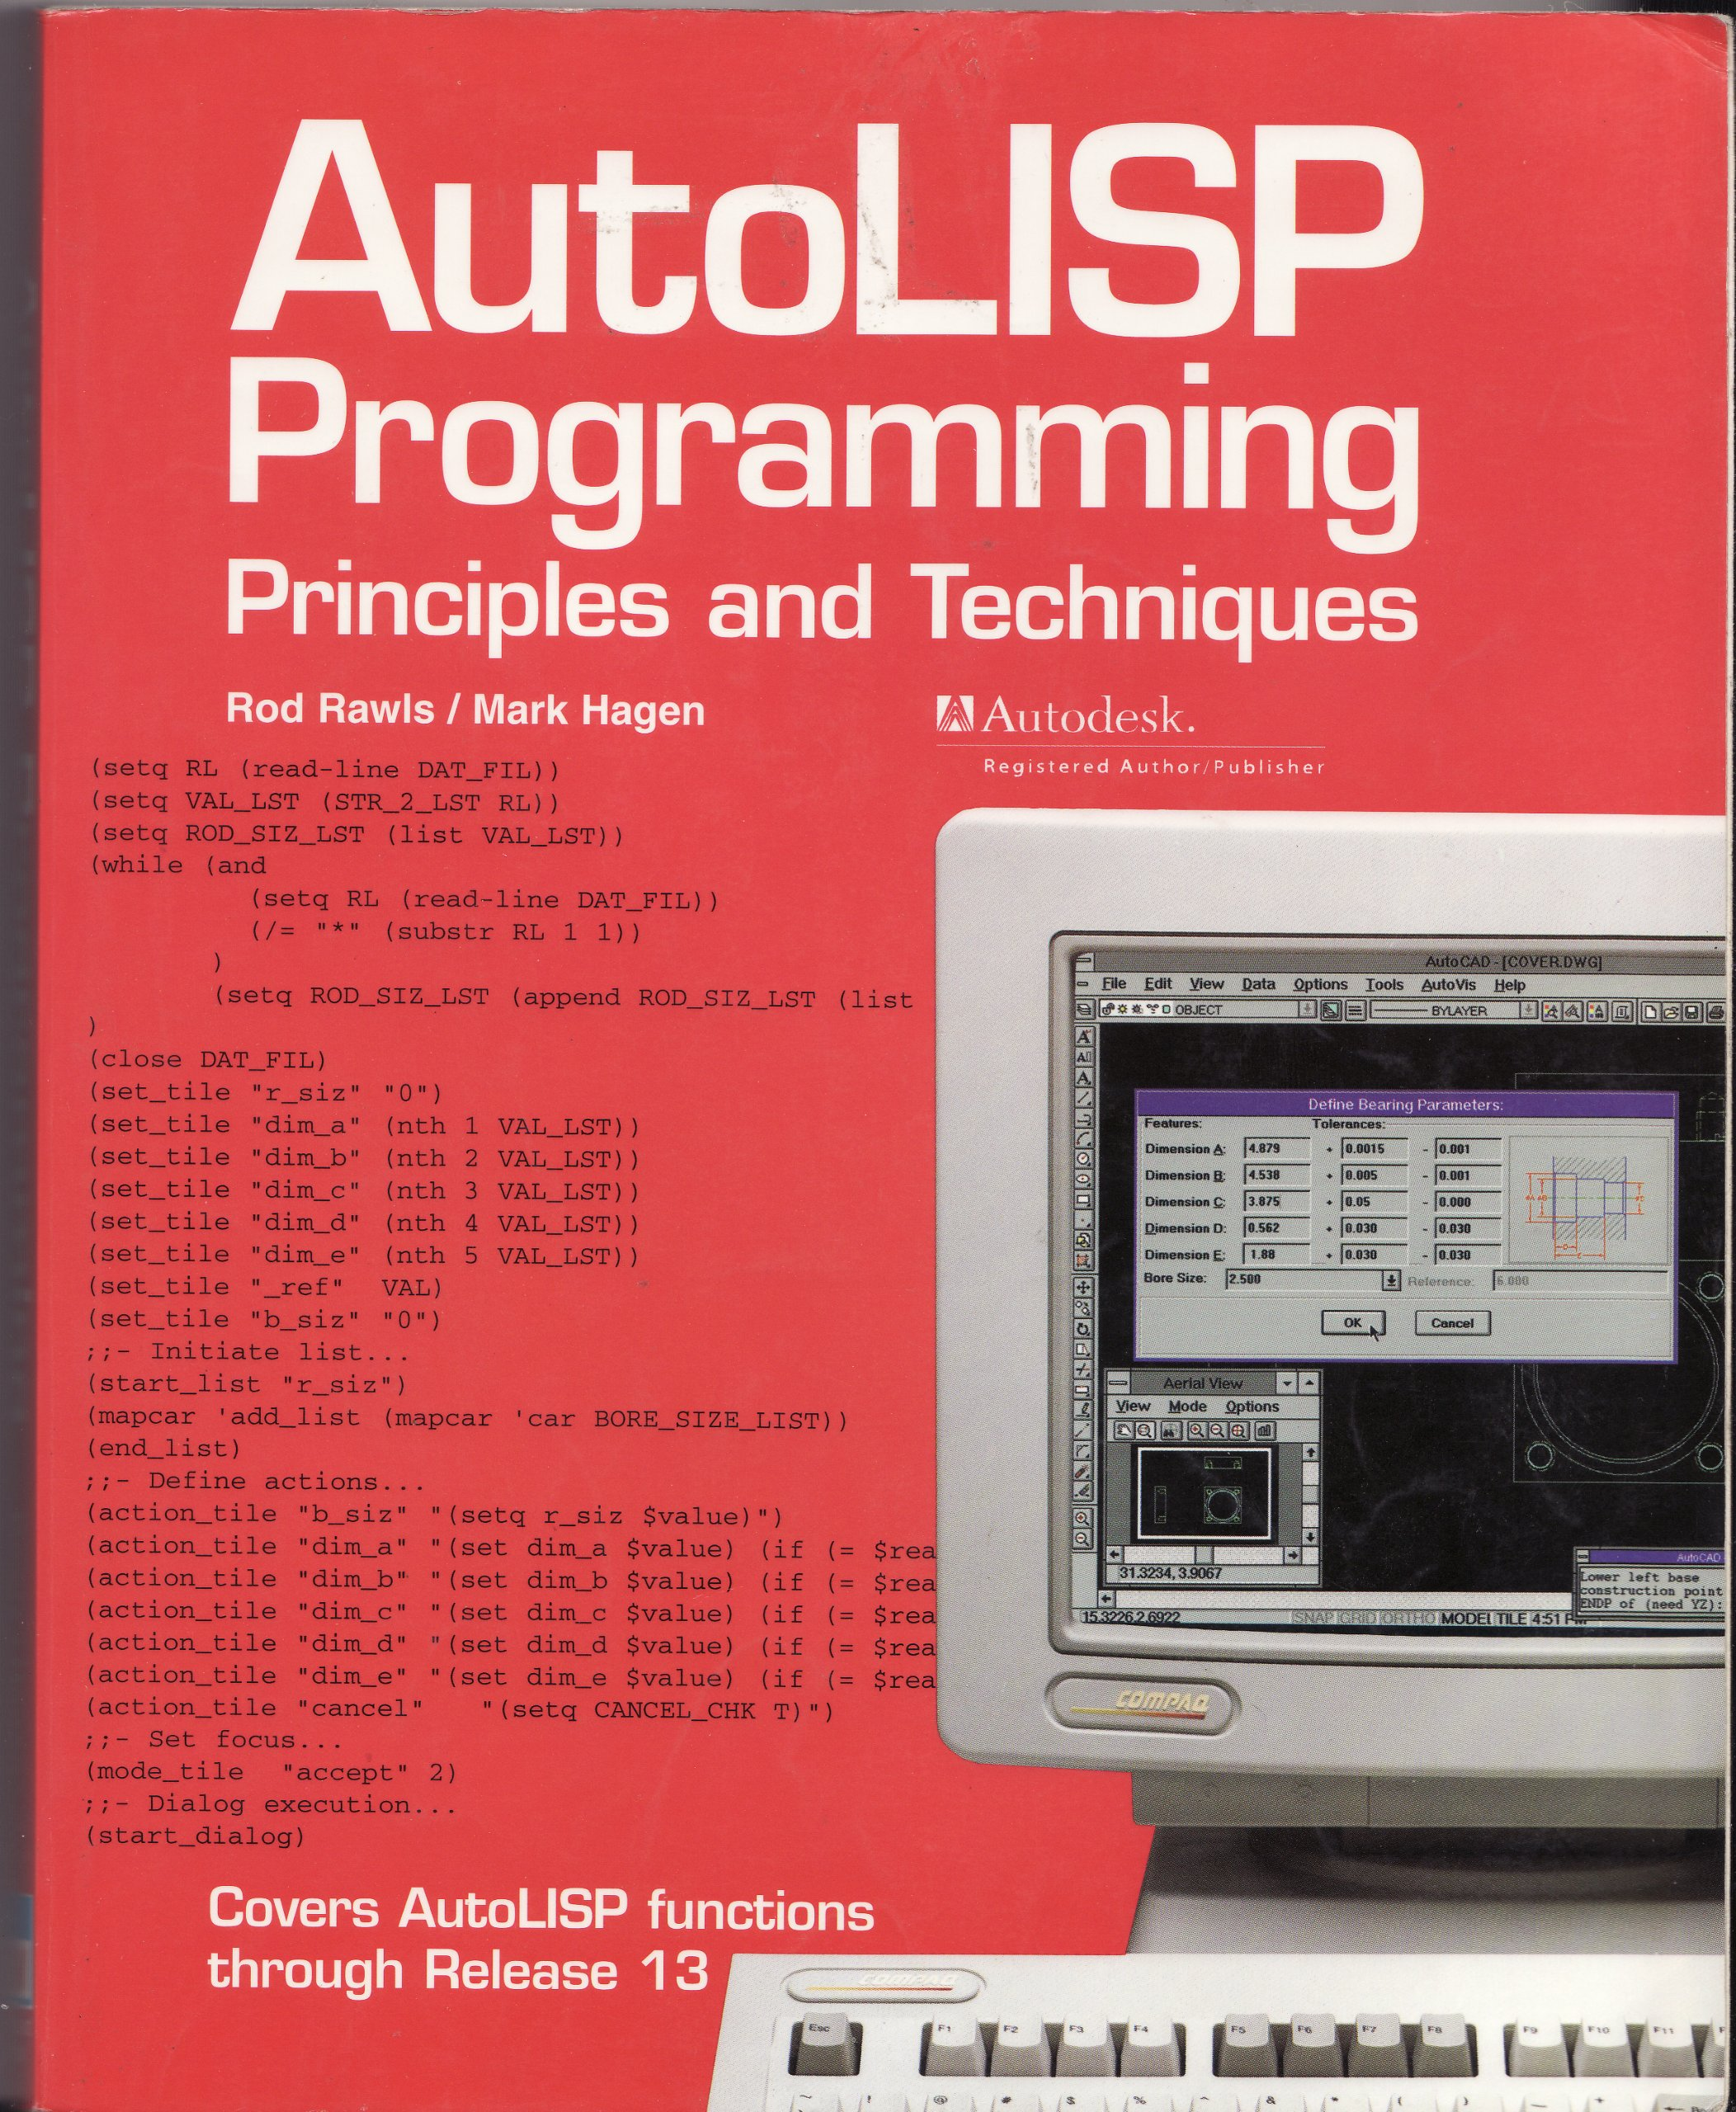 Autolisp programming principles and techniques rod r rawls mark a hagen 9781566371964 amazon com books